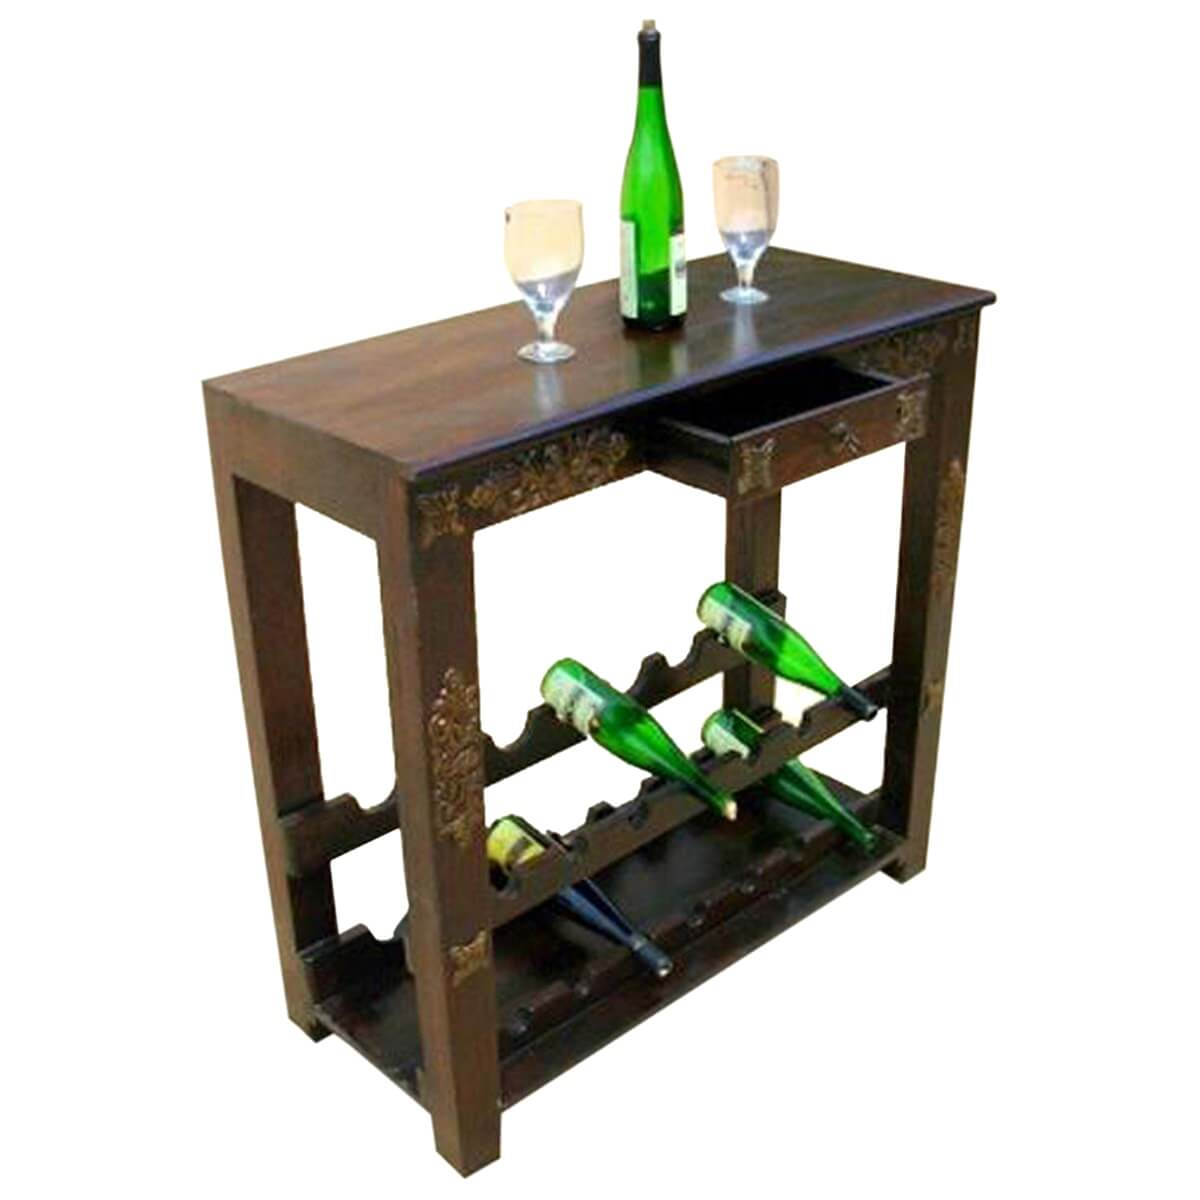 Antique Wooden Wine Rack Highvale Antique Brass Inlay Solid Wood Wine Rack Console